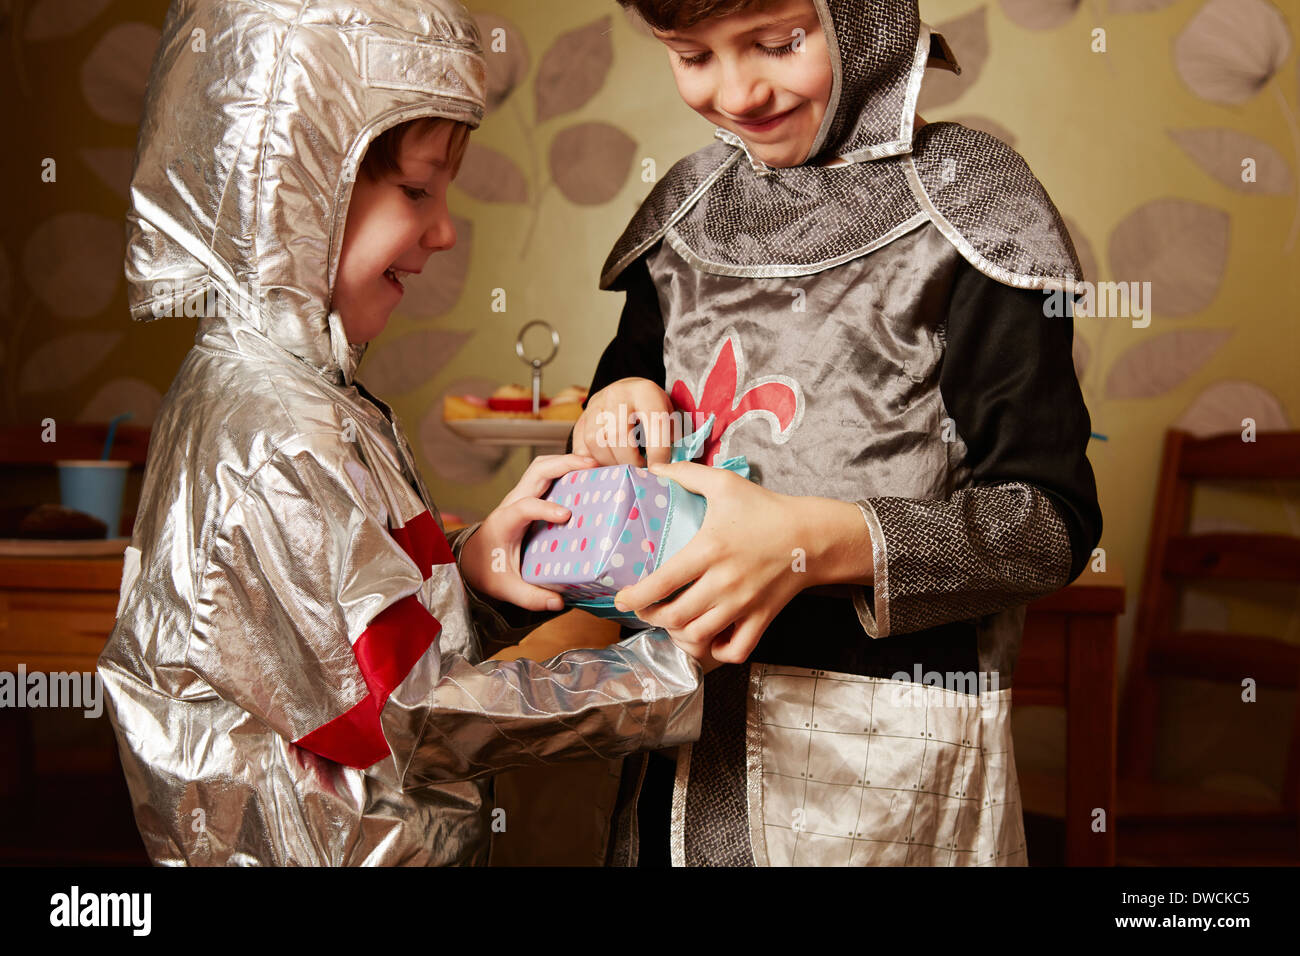 Two boys dressed as knights, one receiving birthday present - Stock Image